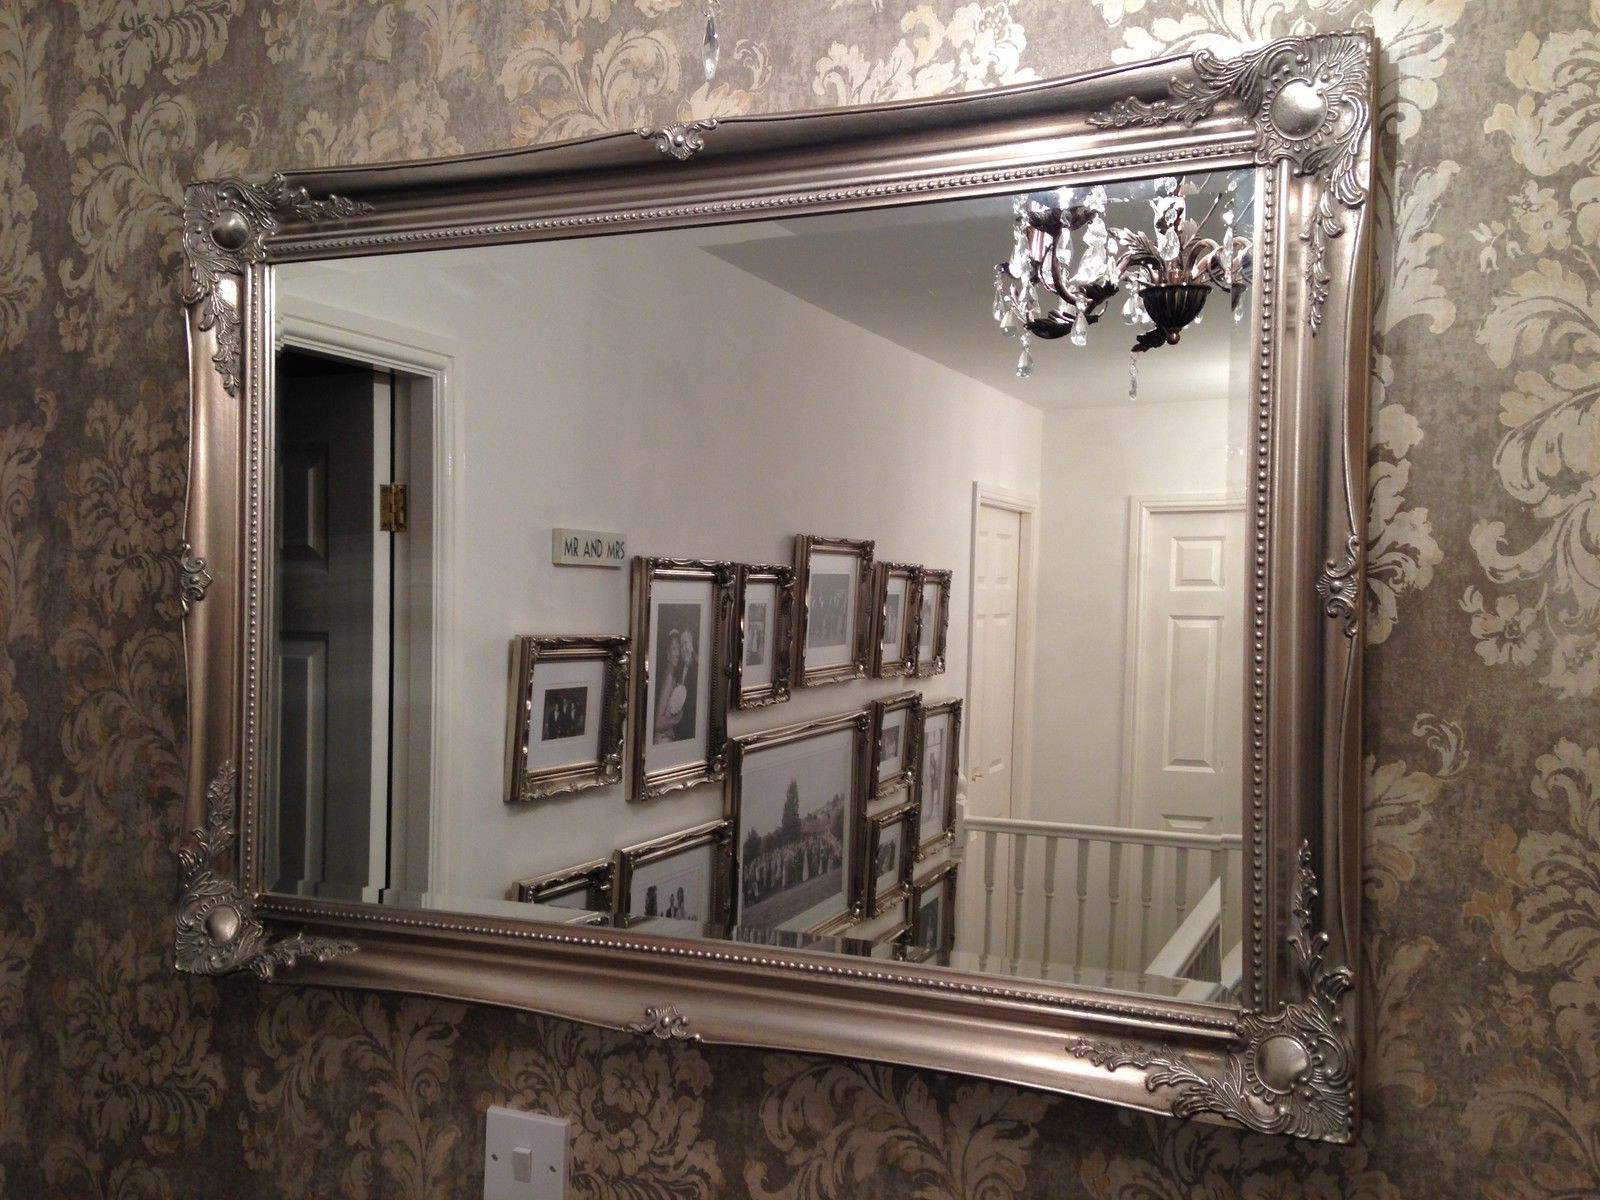 Latest Large Antique Silver Decorative Wall Mirror 36Inch X 26Inch In Stunning Wall Mirrors (View 7 of 20)